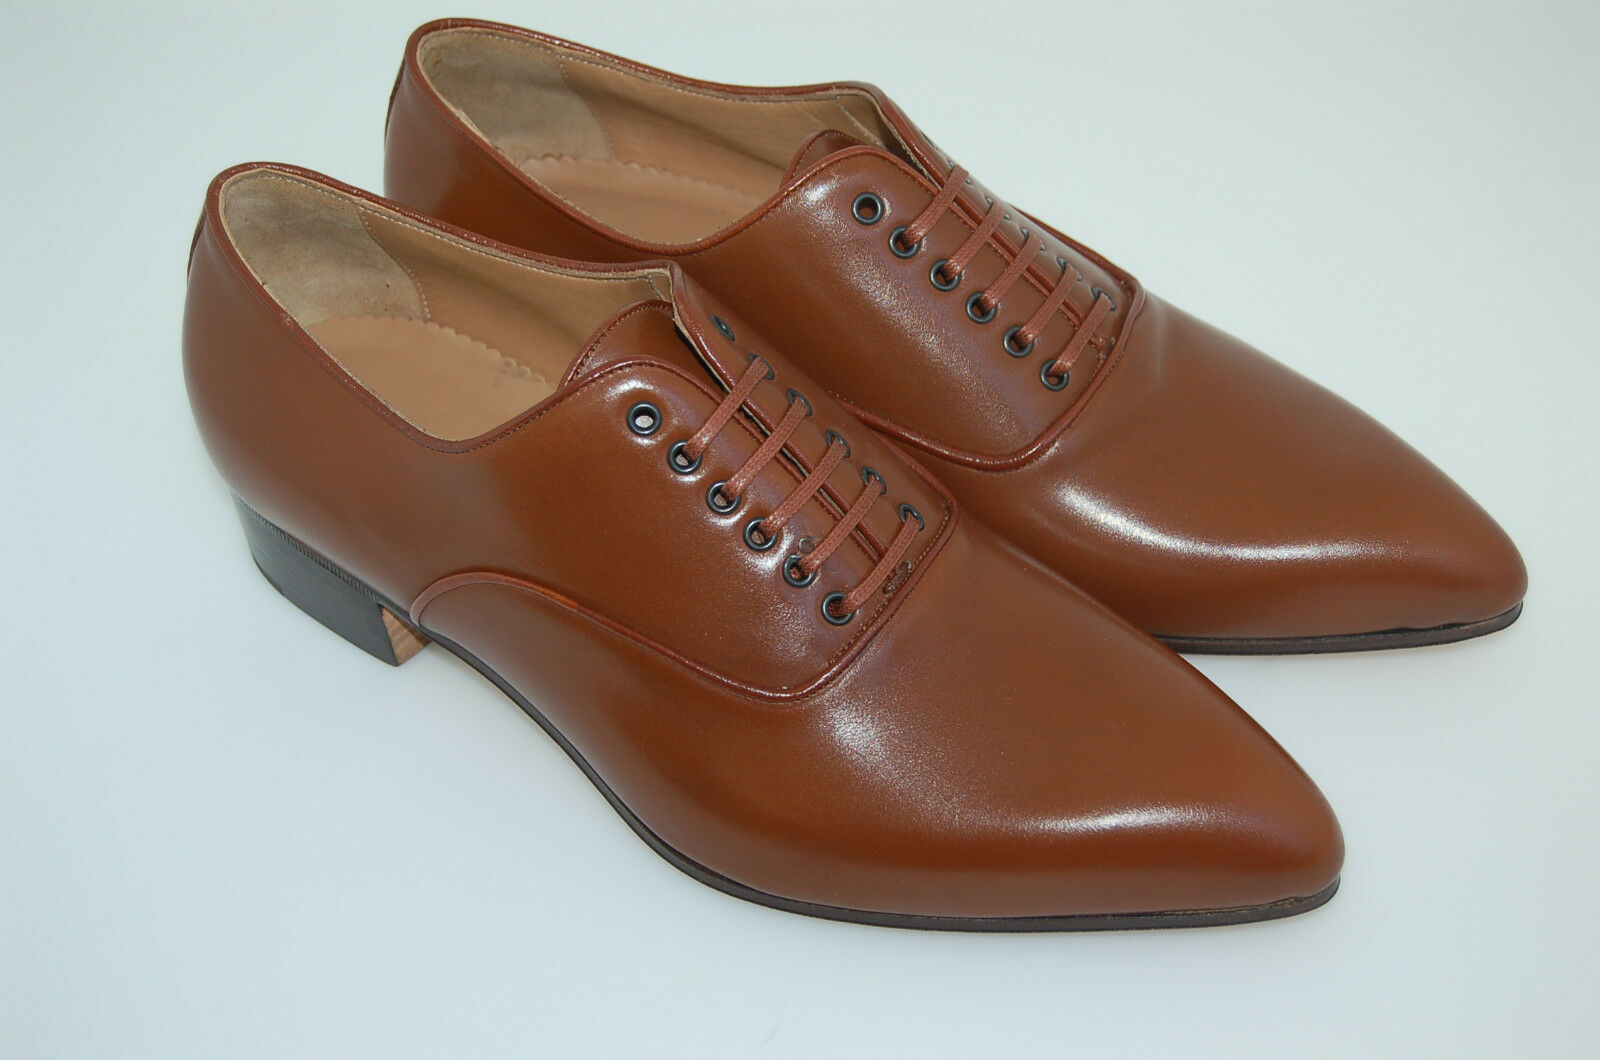 MAN-43-9eu-10us-OXFORD-BRANDY CALF-VITELLO BRANDY-LTH SOLE/SUOLA CST CUOIO+BLAKE CST SOLE/SUOLA db6765